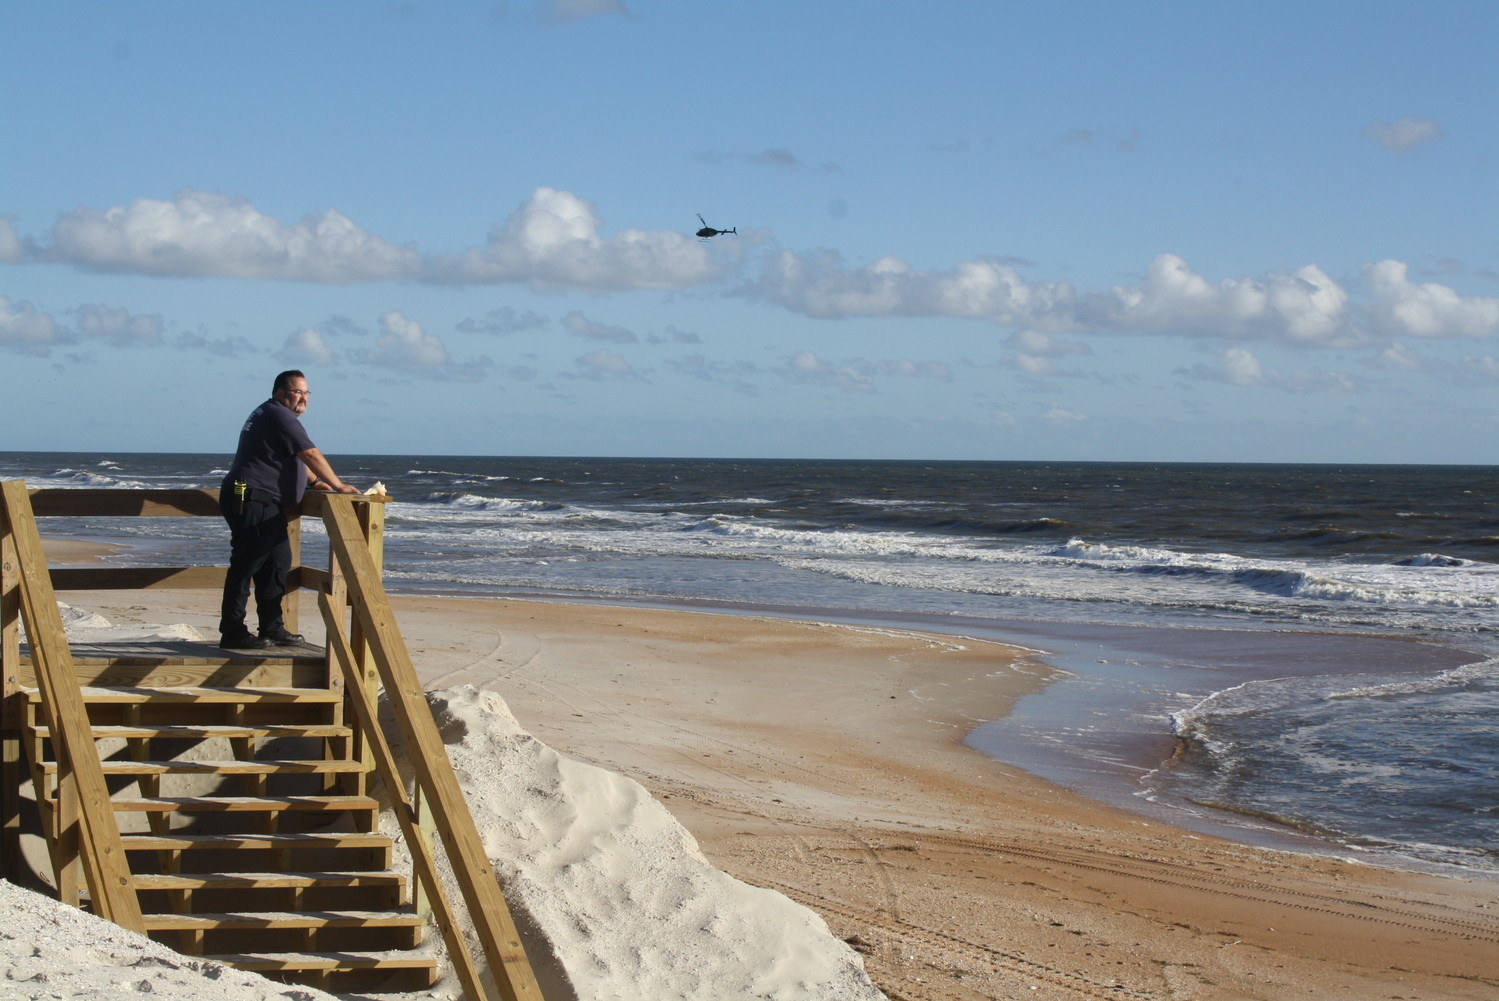 Emergency personnel search by air, boat and ground to locate the swimmer that went missing off South Ponte Vedra Beach Oct. 12. Remains have since been found on the beach that have been identified as the missing swimmer, 47-year-old Dale Robert Kopf of St. Augustine.